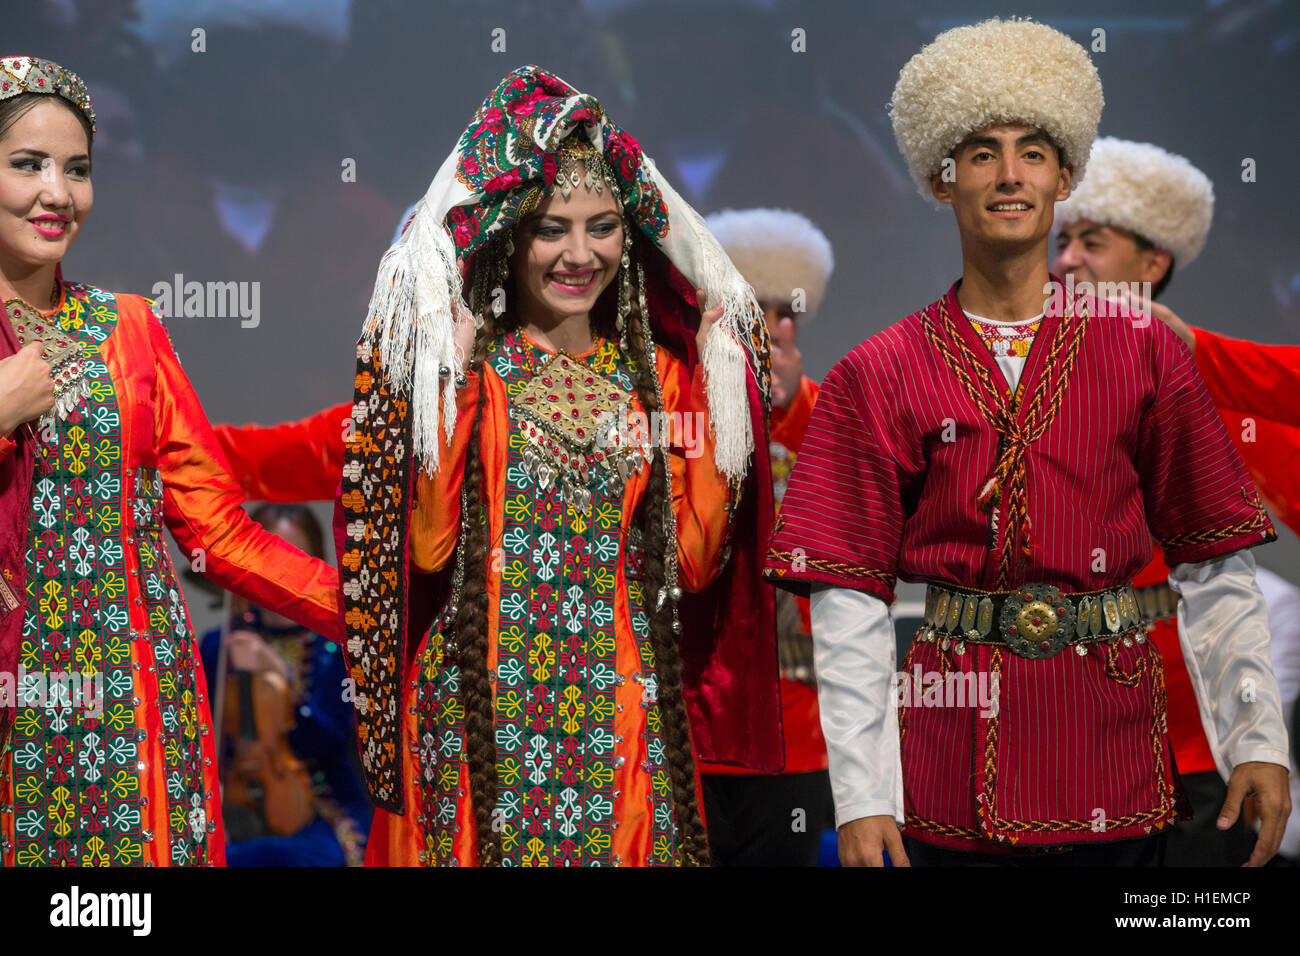 Dance group 'Lachin' shows the traditional wedding ceremony during the Days of Culture of Turkmenistan Republic - Stock Image